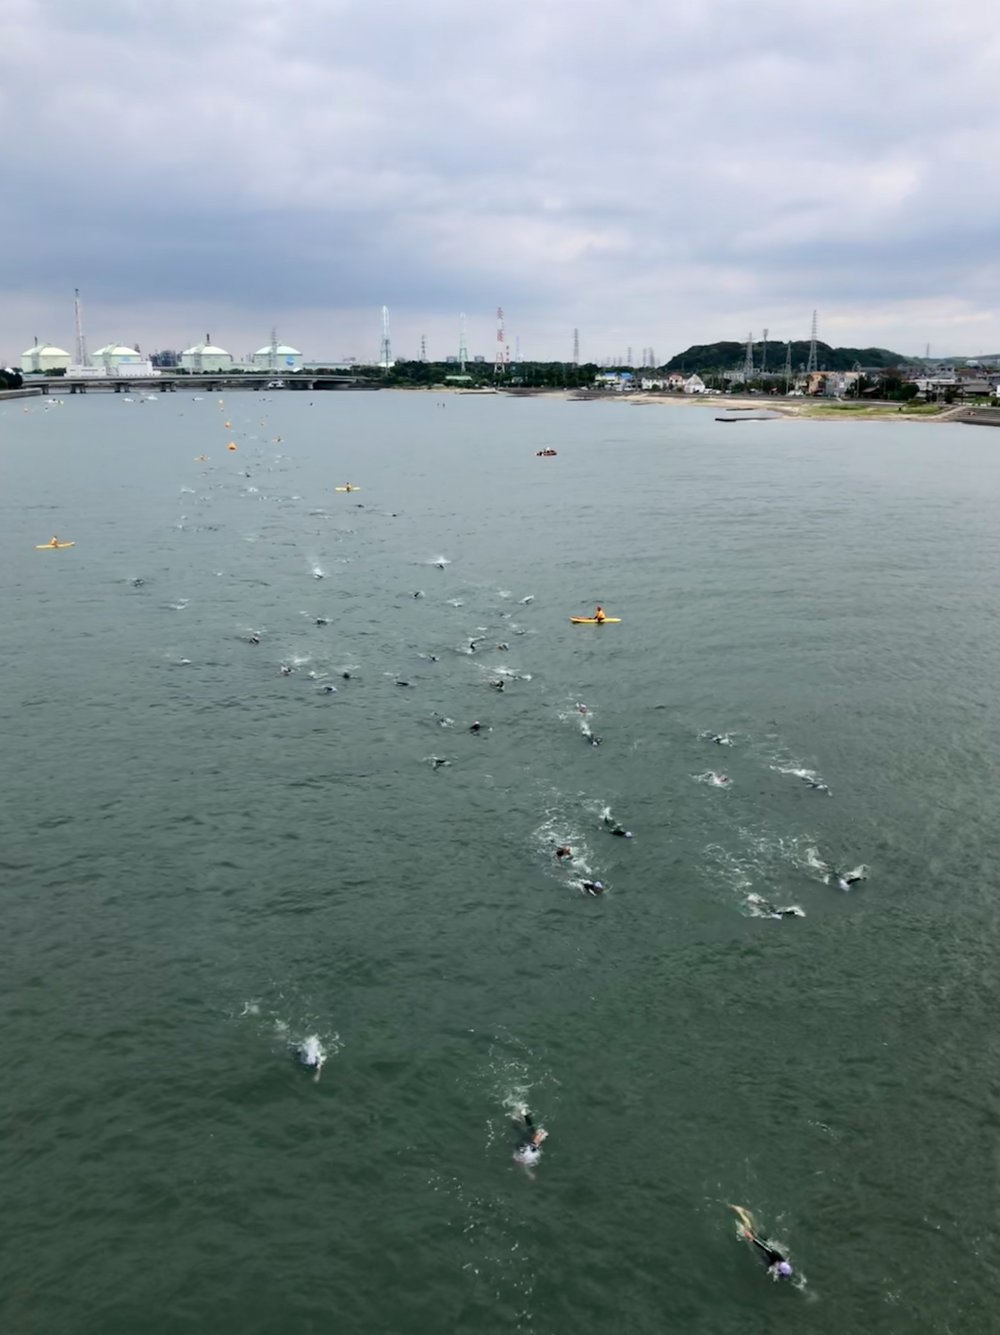 Ironman 70.3 Japan Swim (PC: Peaman)